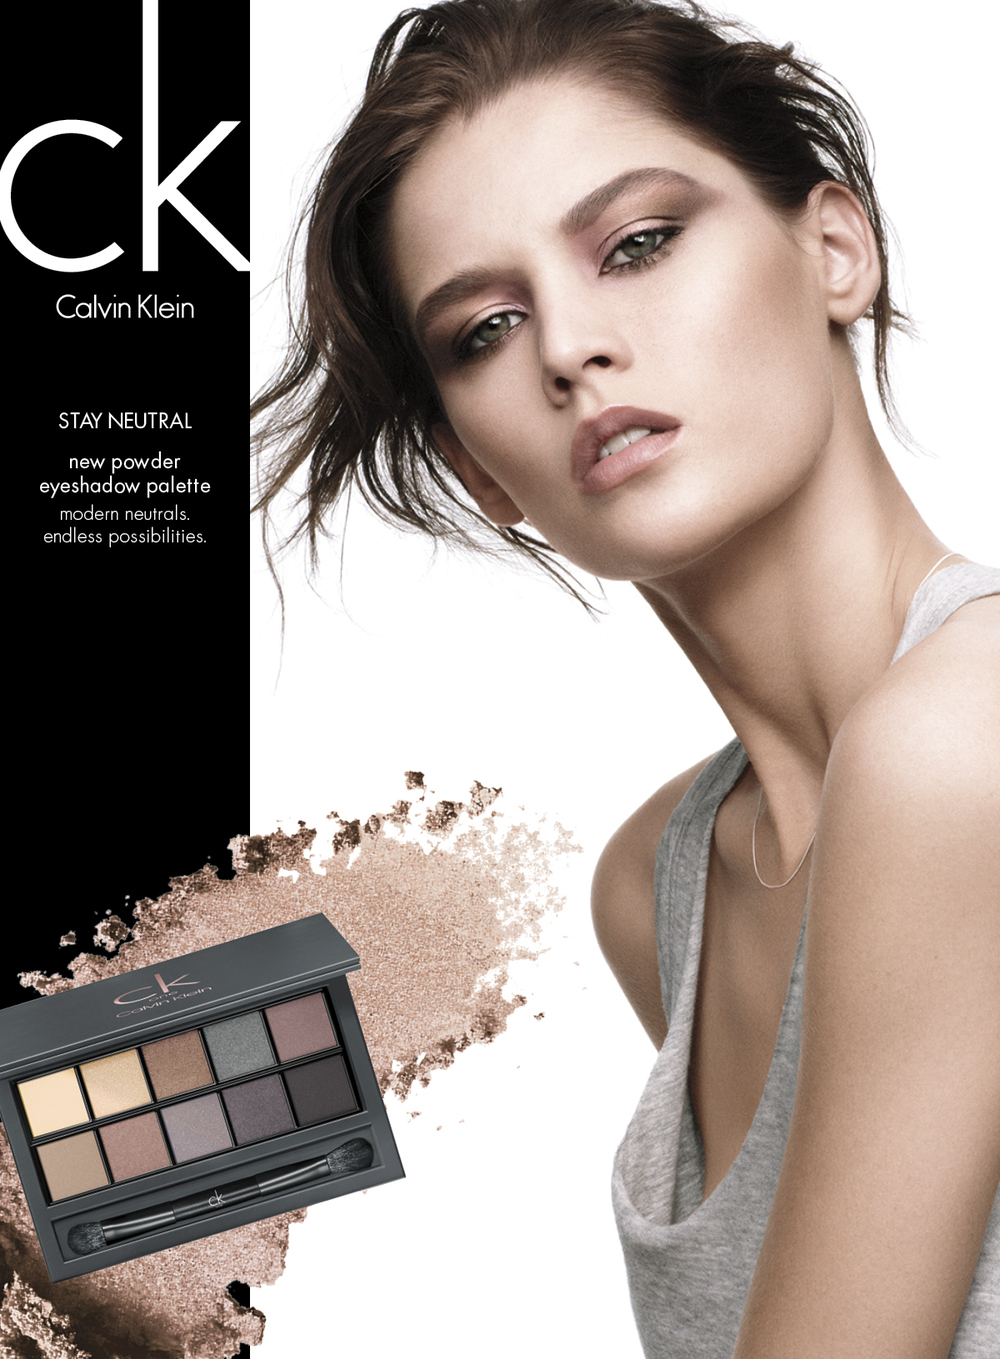 CK COLOR SINGLE PAGE 8%22X10.875%22_EYESHADOW PALLETTE 2.jpg